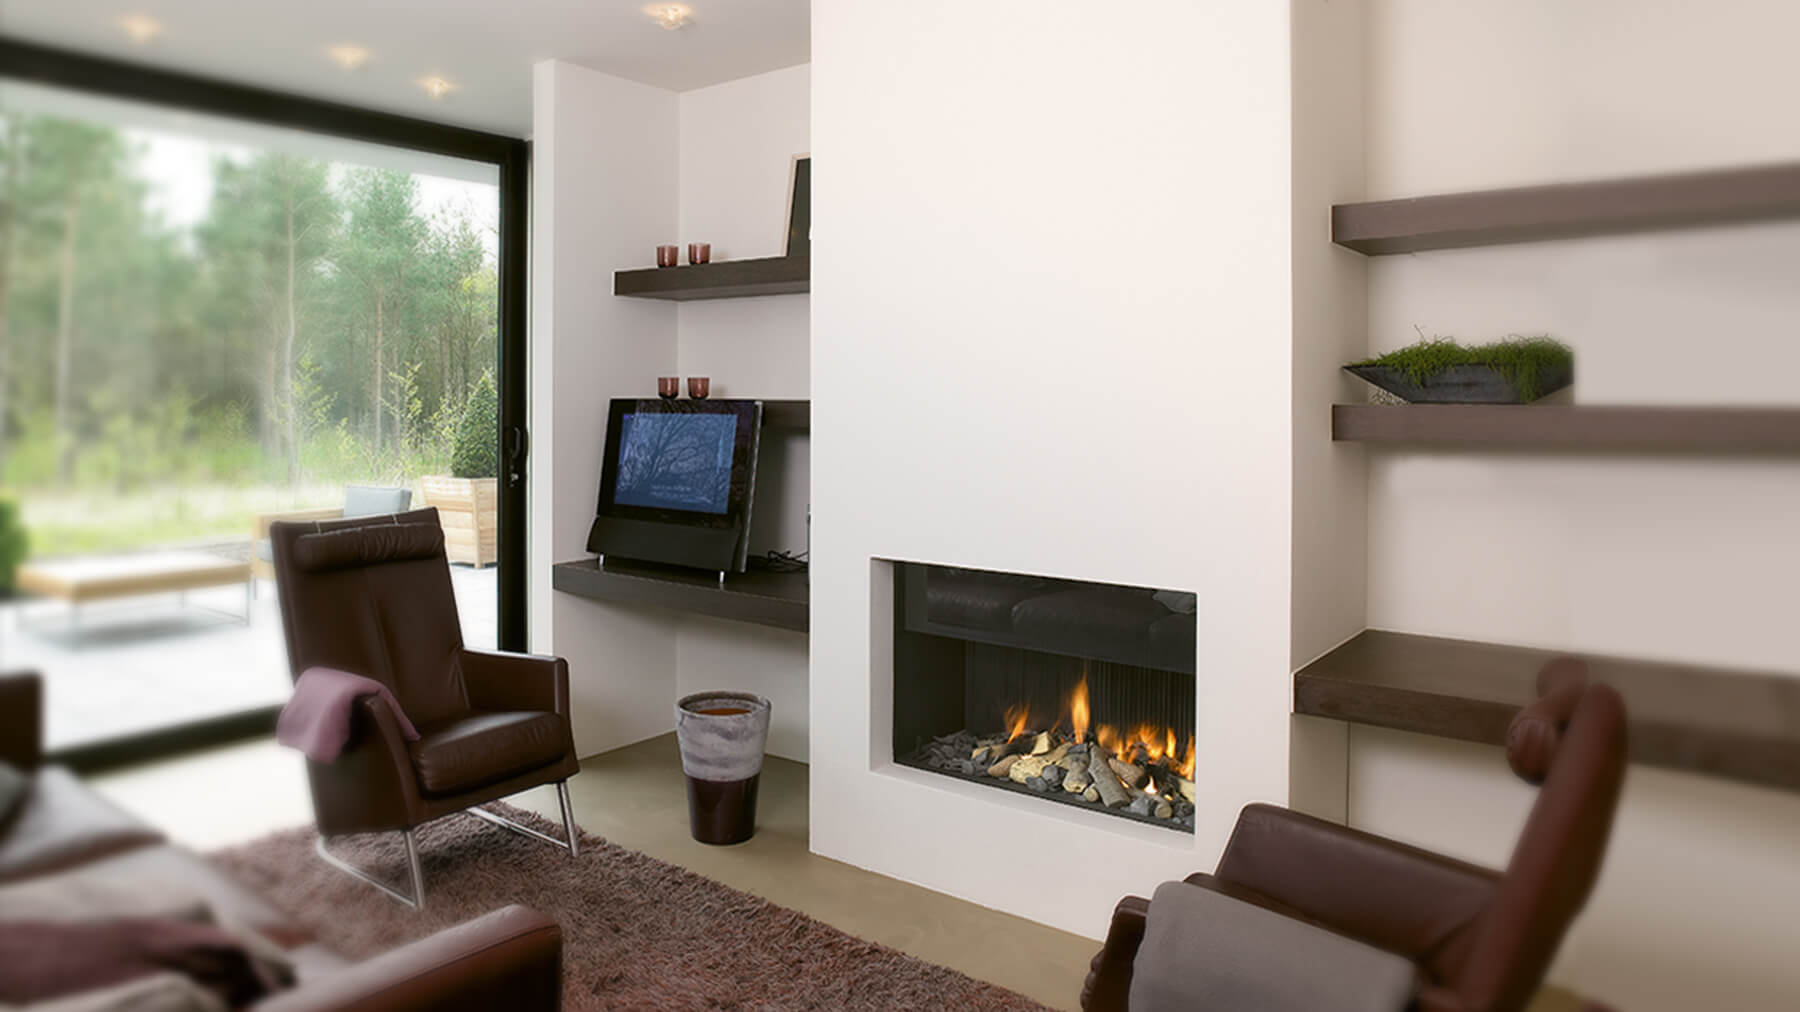 Hole in the wall fireplace i contemporary fireplaces - Build contemporary fireplace ideas ...